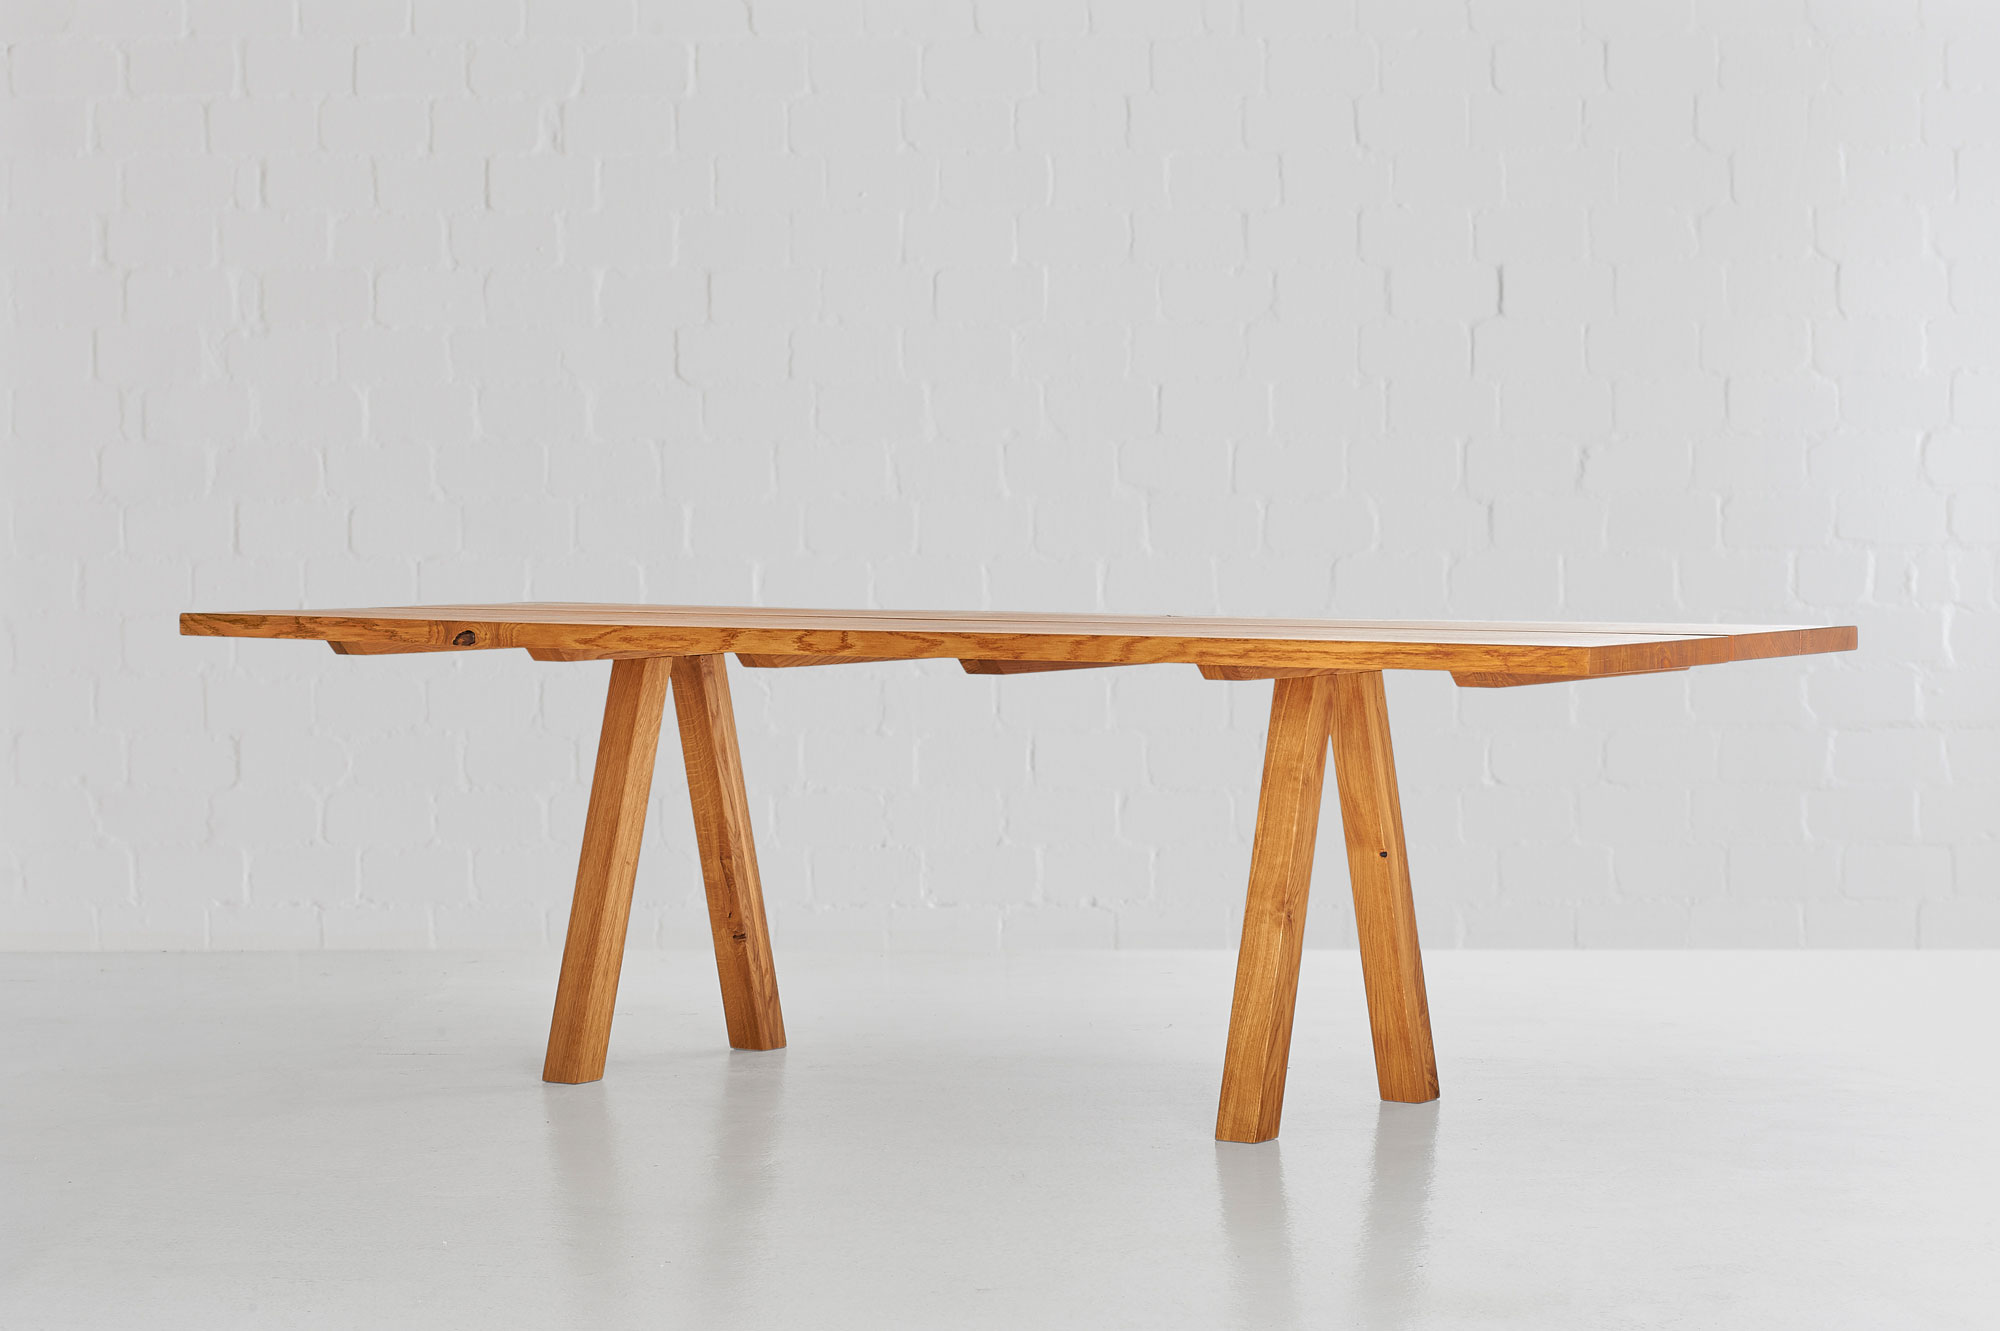 Designer Tree Trunk Table PAPILIO 0441 custom made in solid wood by vitamin design